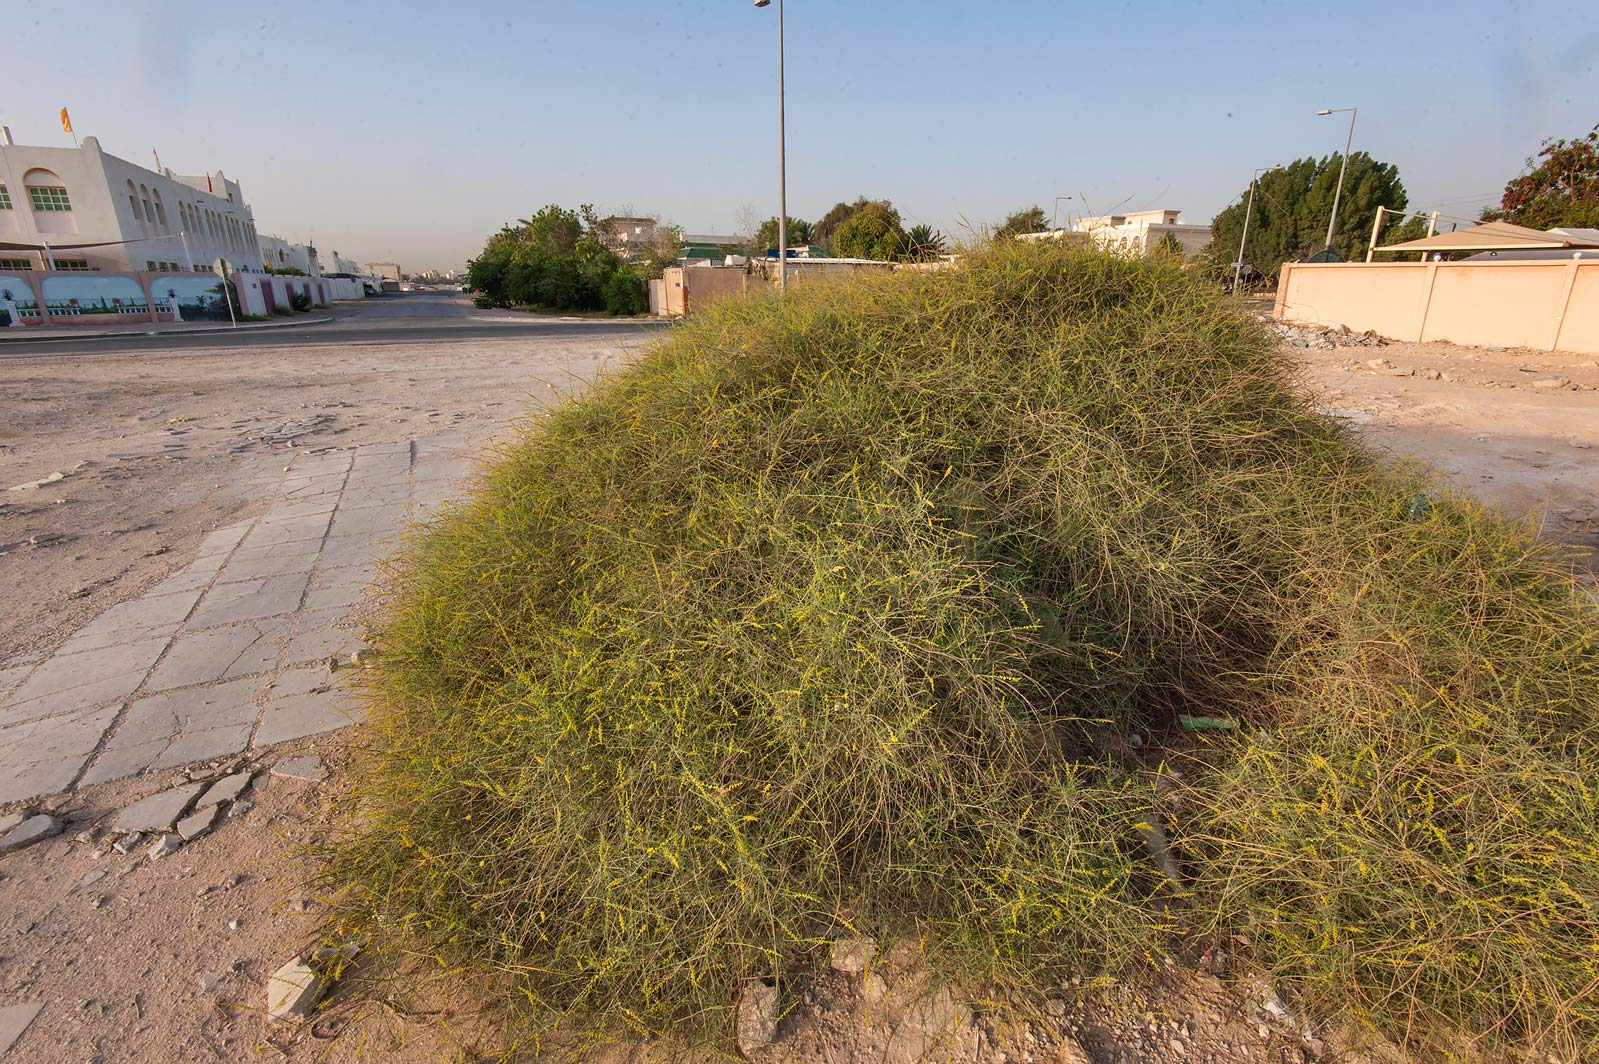 Bush of Ochradenus baccatus on Al Rayhan St. in Al Luqta area. Doha, Qatar